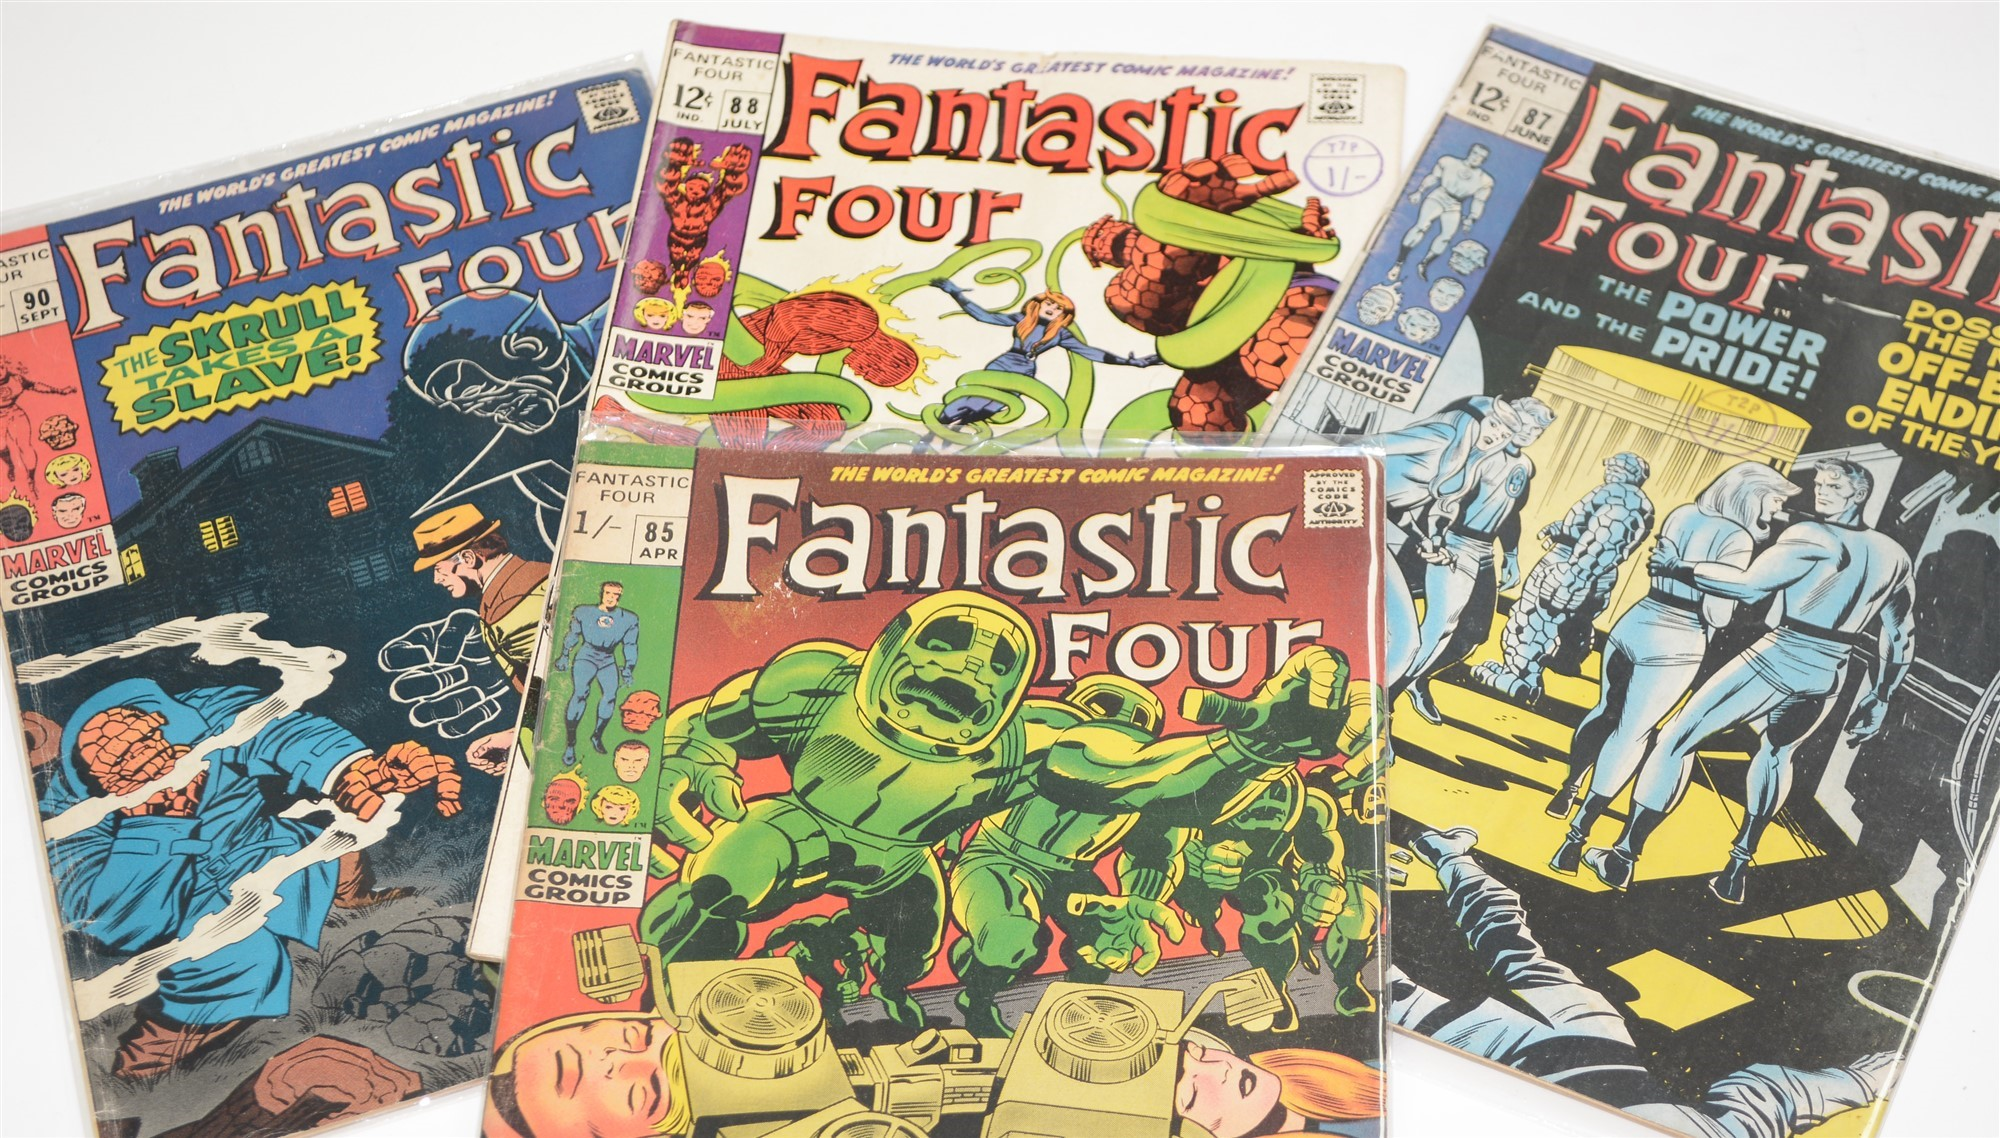 Fantastic Four No's. 60, 68, 77, 85, 87, 88, 90, 91, 92, 93 and 94. - Image 3 of 4